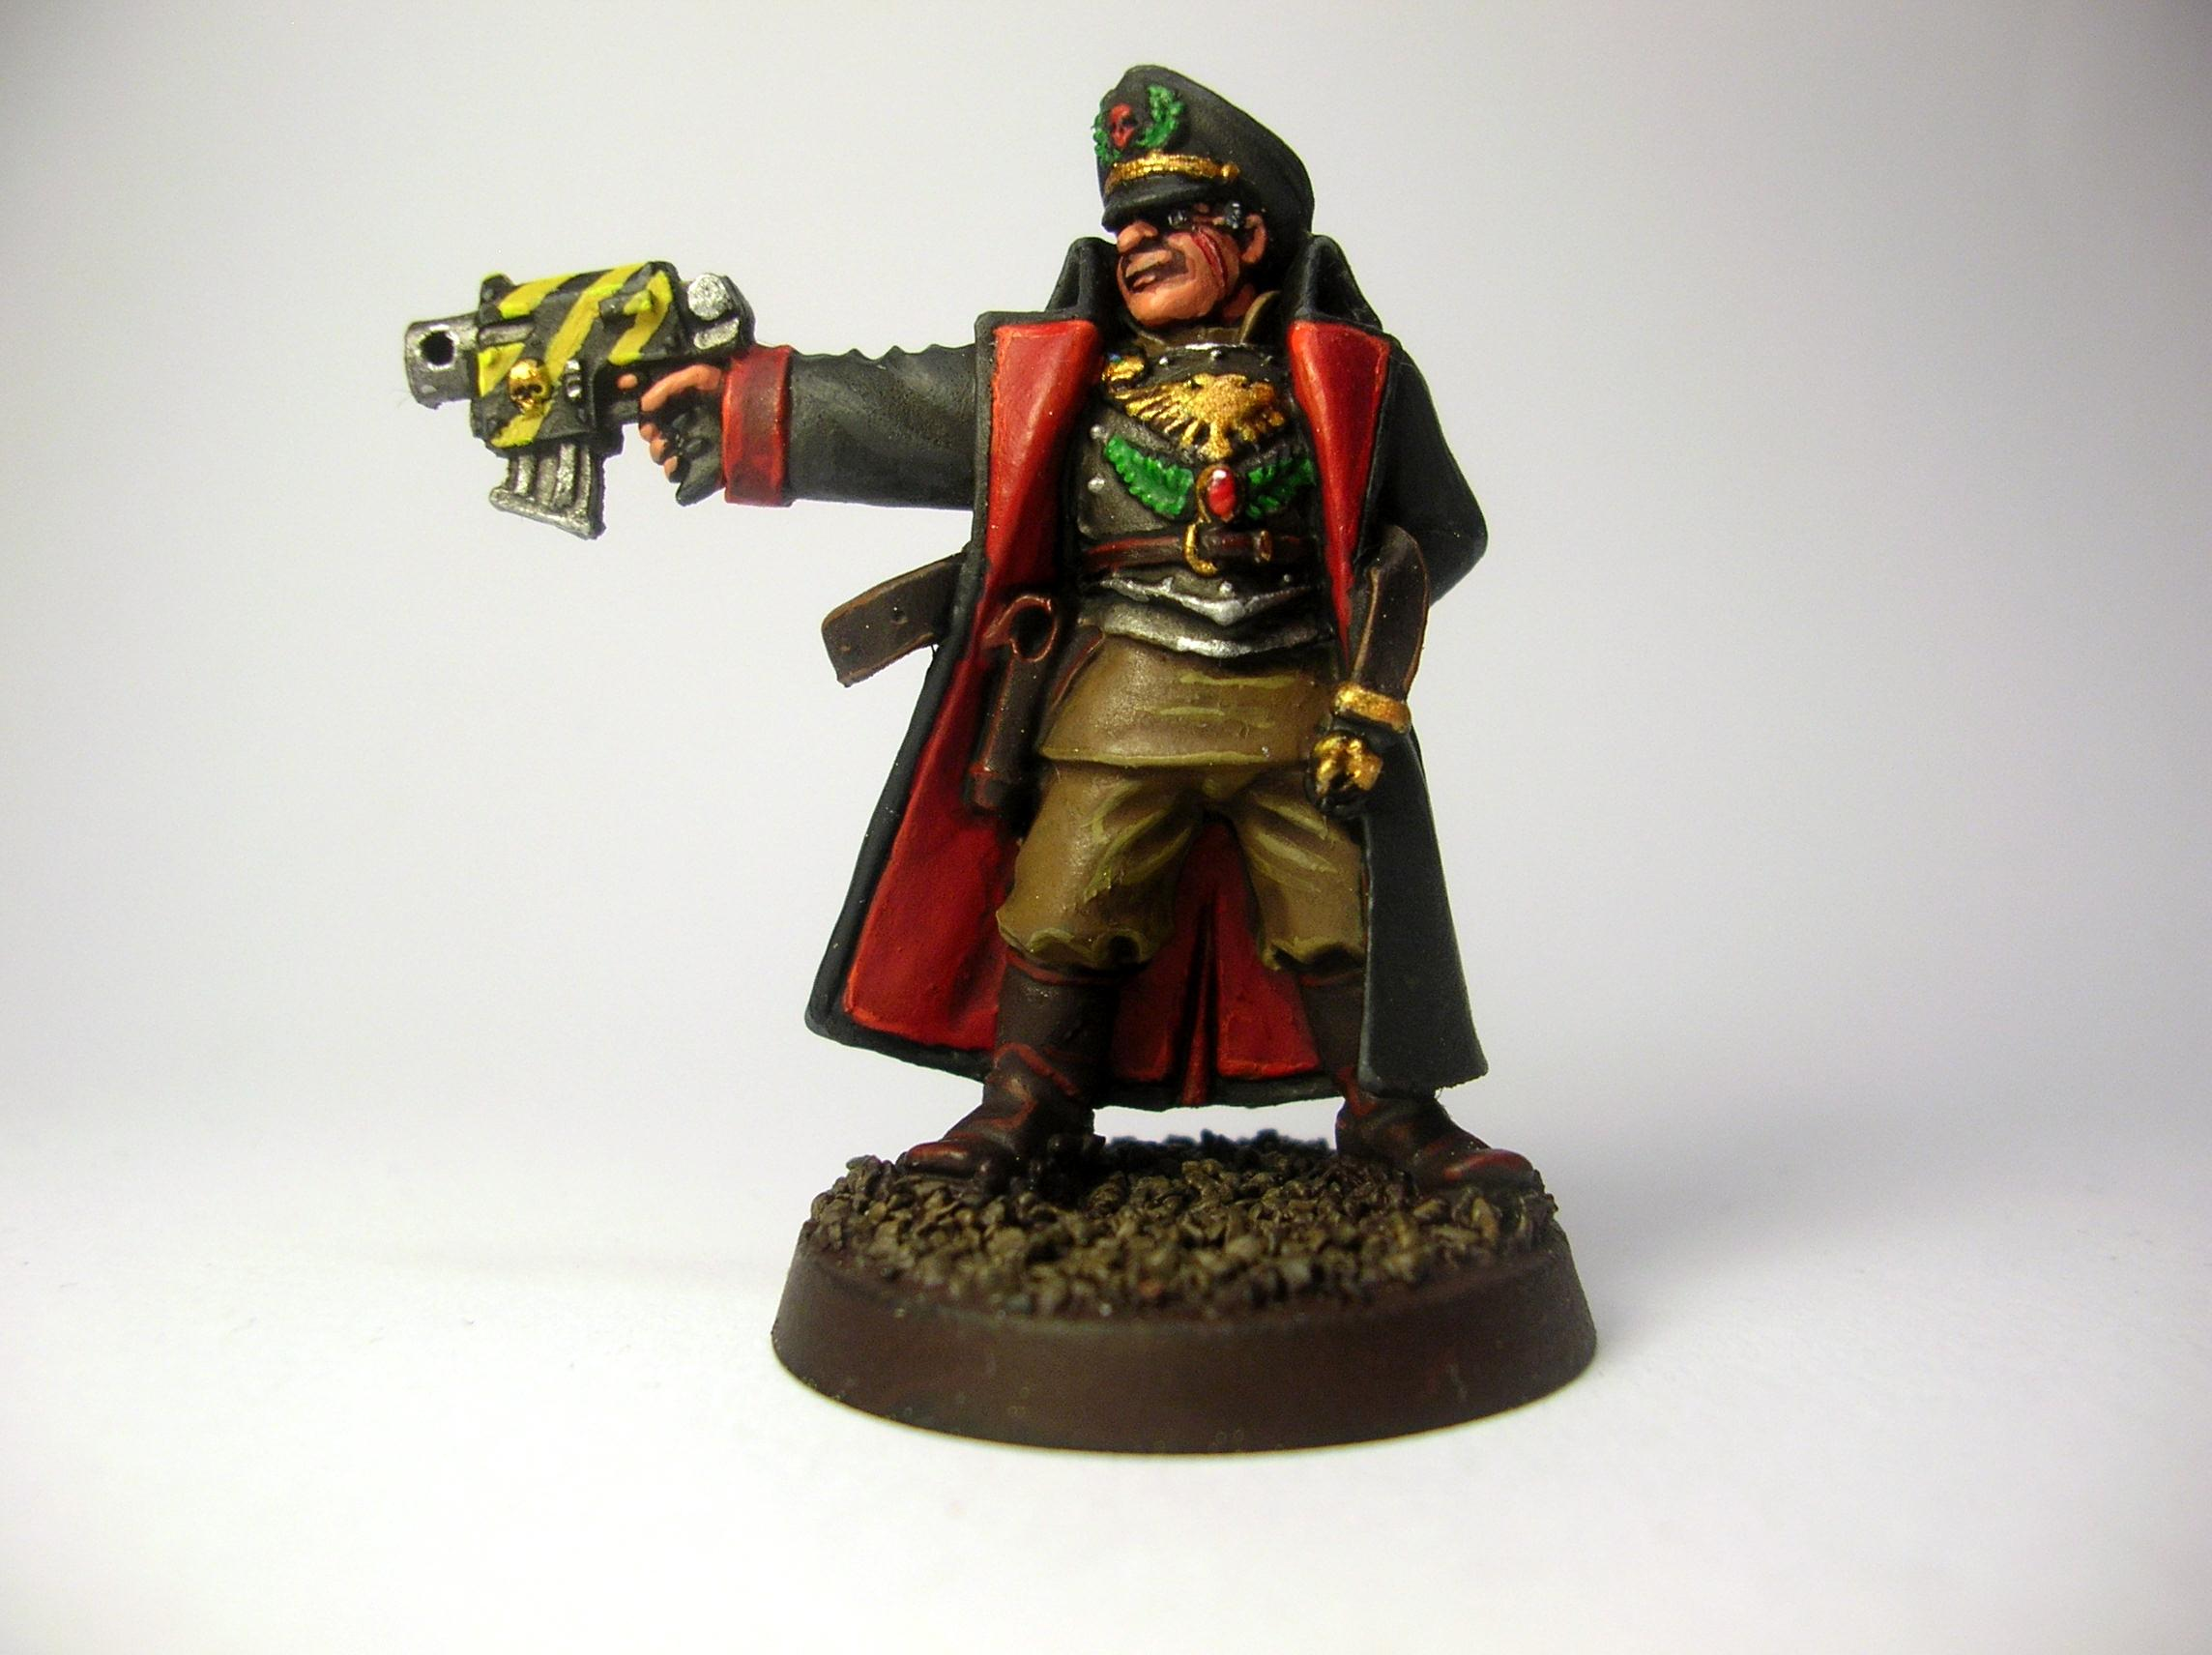 Commissar, Imperial Guard, Russians, Valhallans, Warhammer 40,000